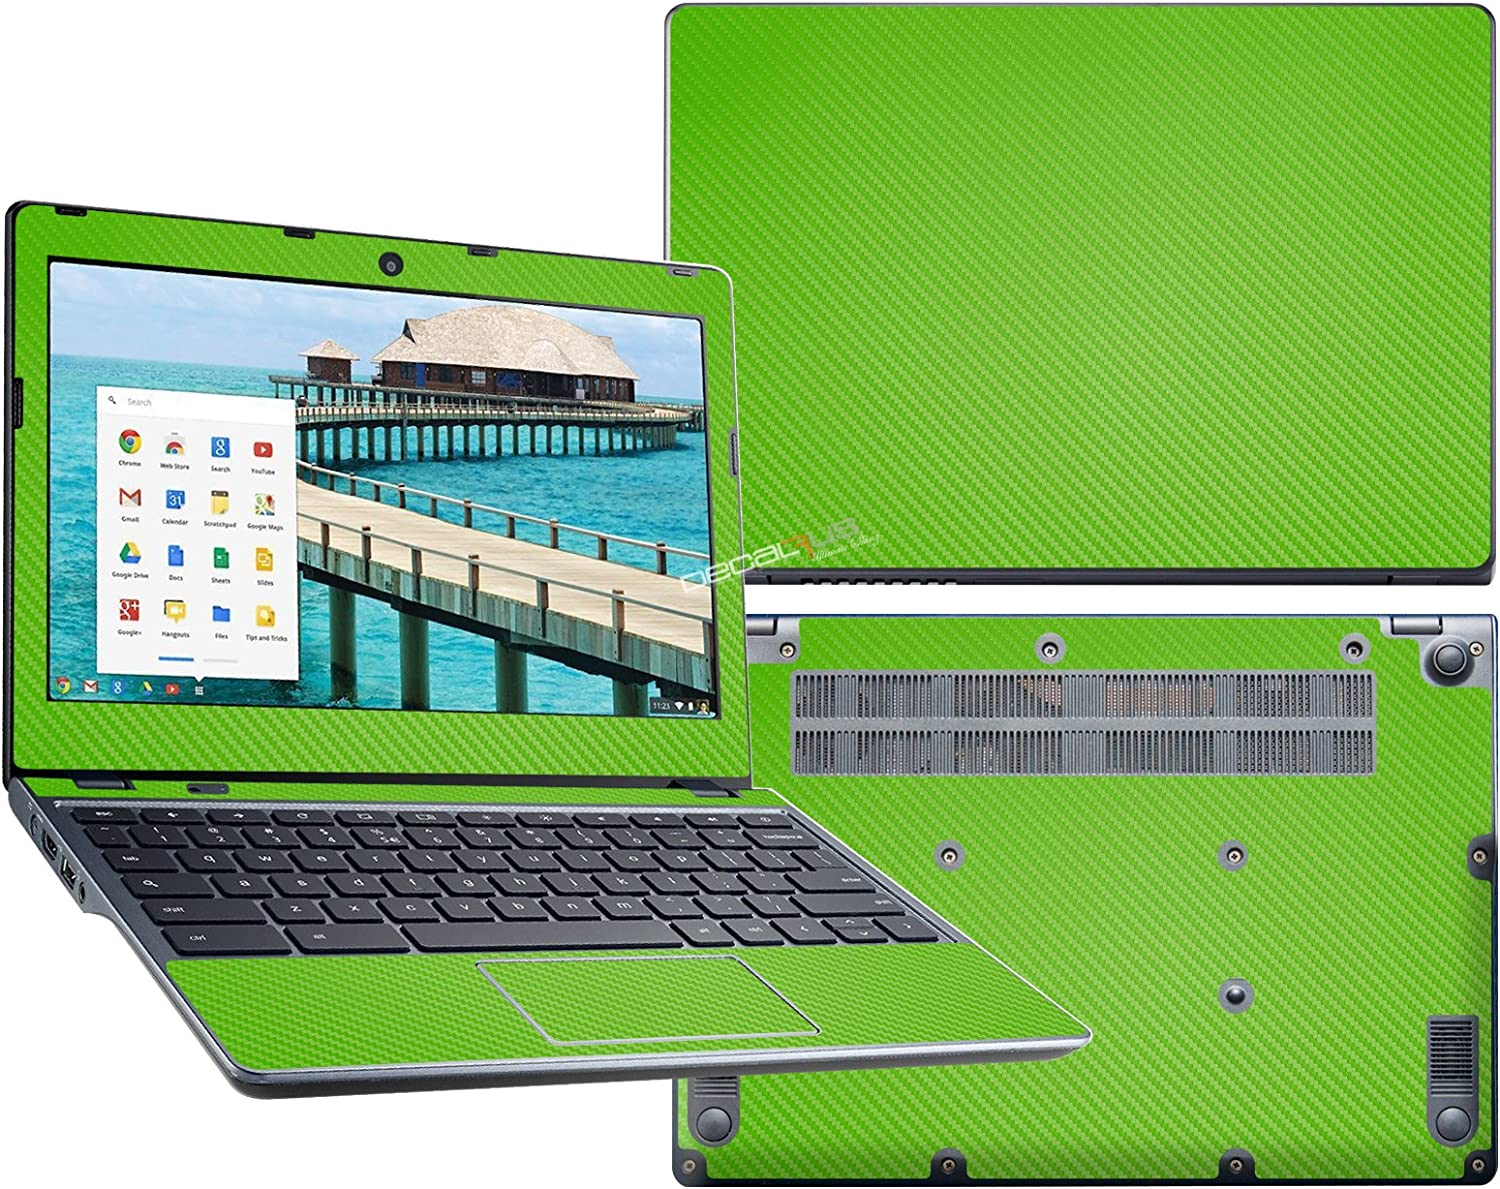 decalrus - Protective Decal for Acer Chromebook 11 C740 (11.6